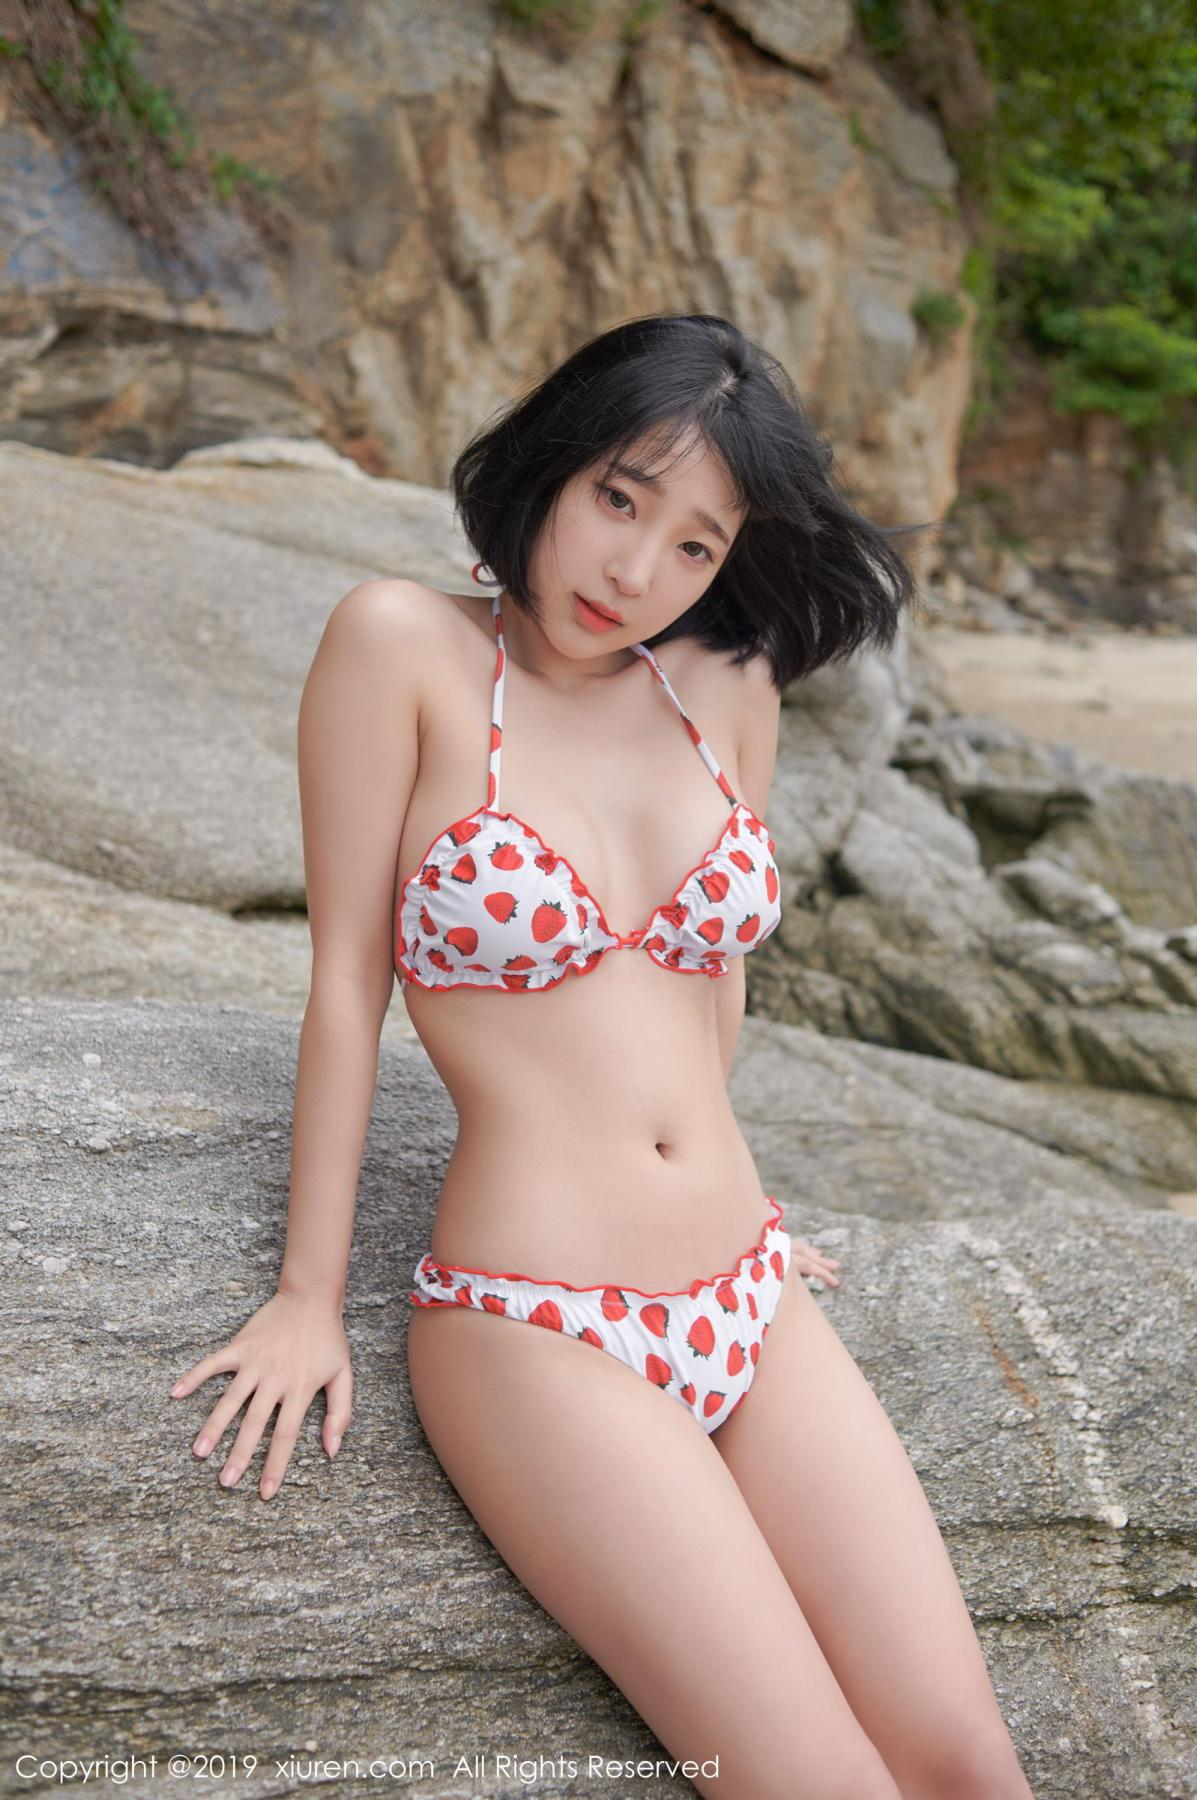 [XiuRen] Vol.1611 Model Qing Qing 20P, Beach, Bikini, Kang In Kyung, Xiuren